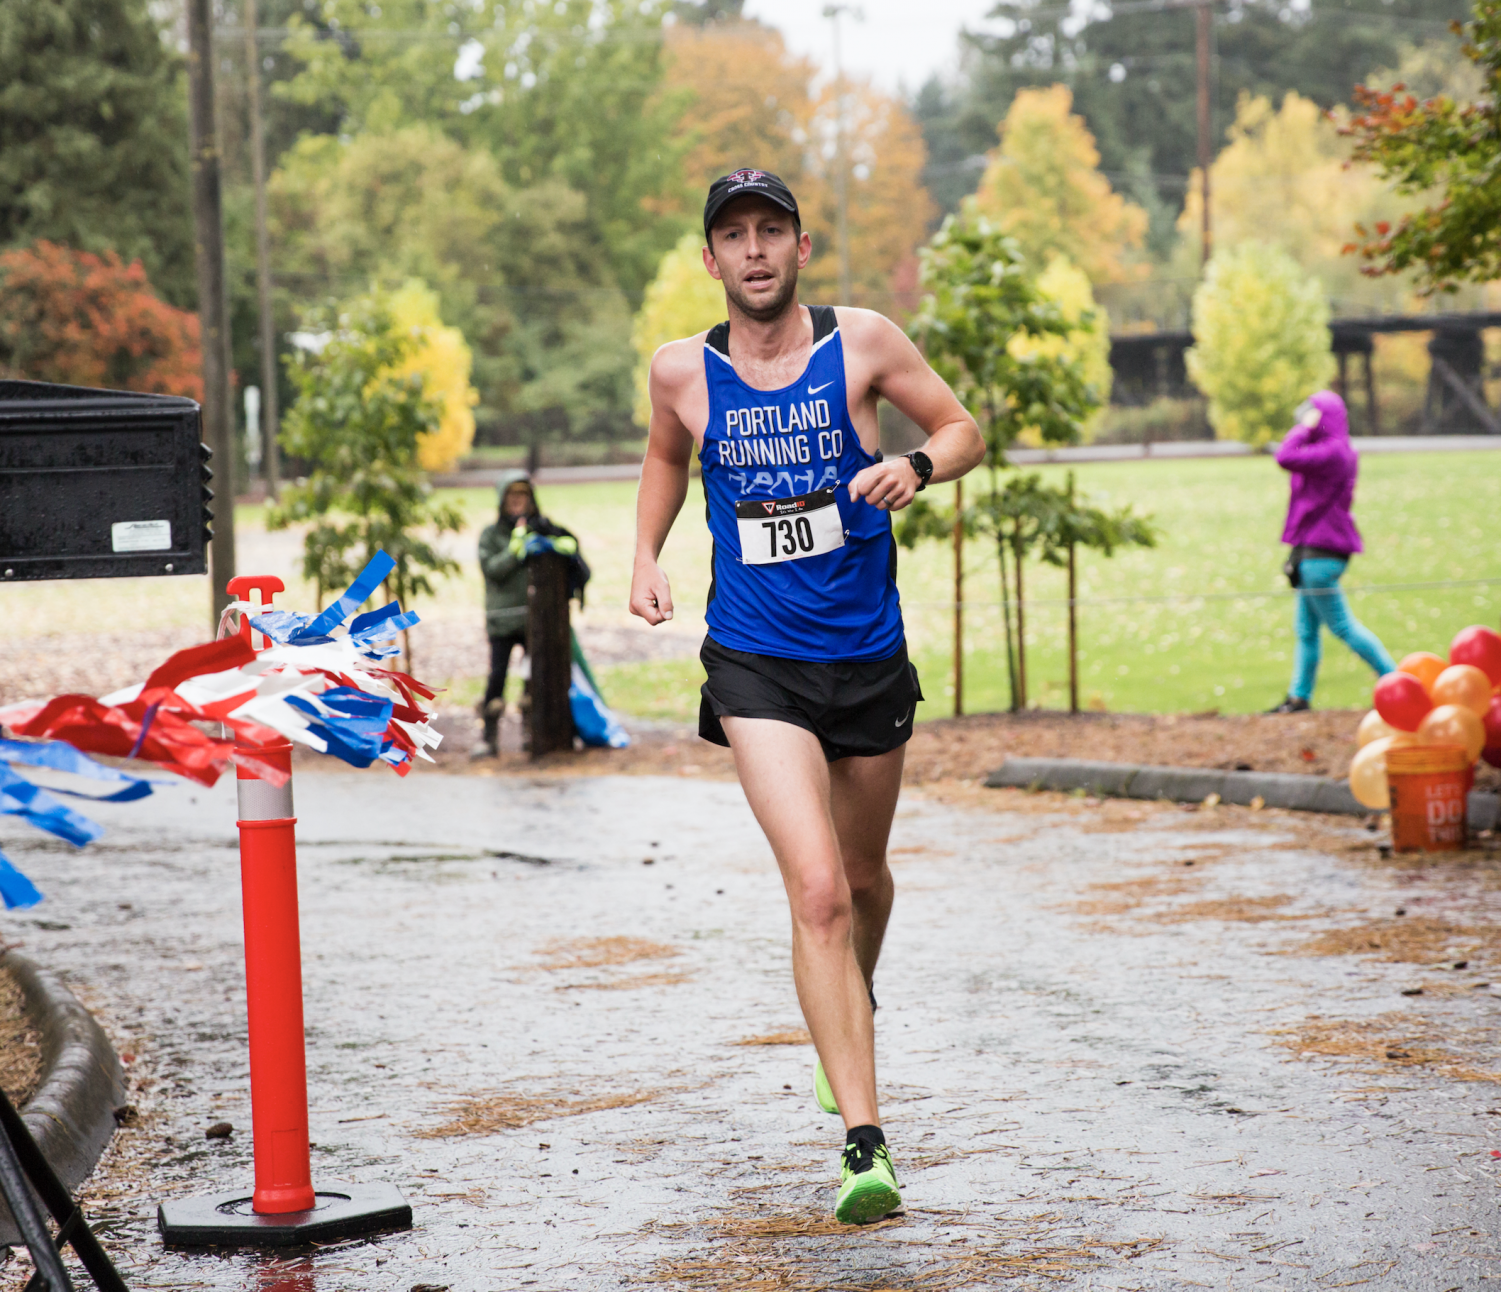 Chris McIsaac runs in the 2017 5K Regatta Run. He hopes to run a sub 2:30 marathon in Boston.